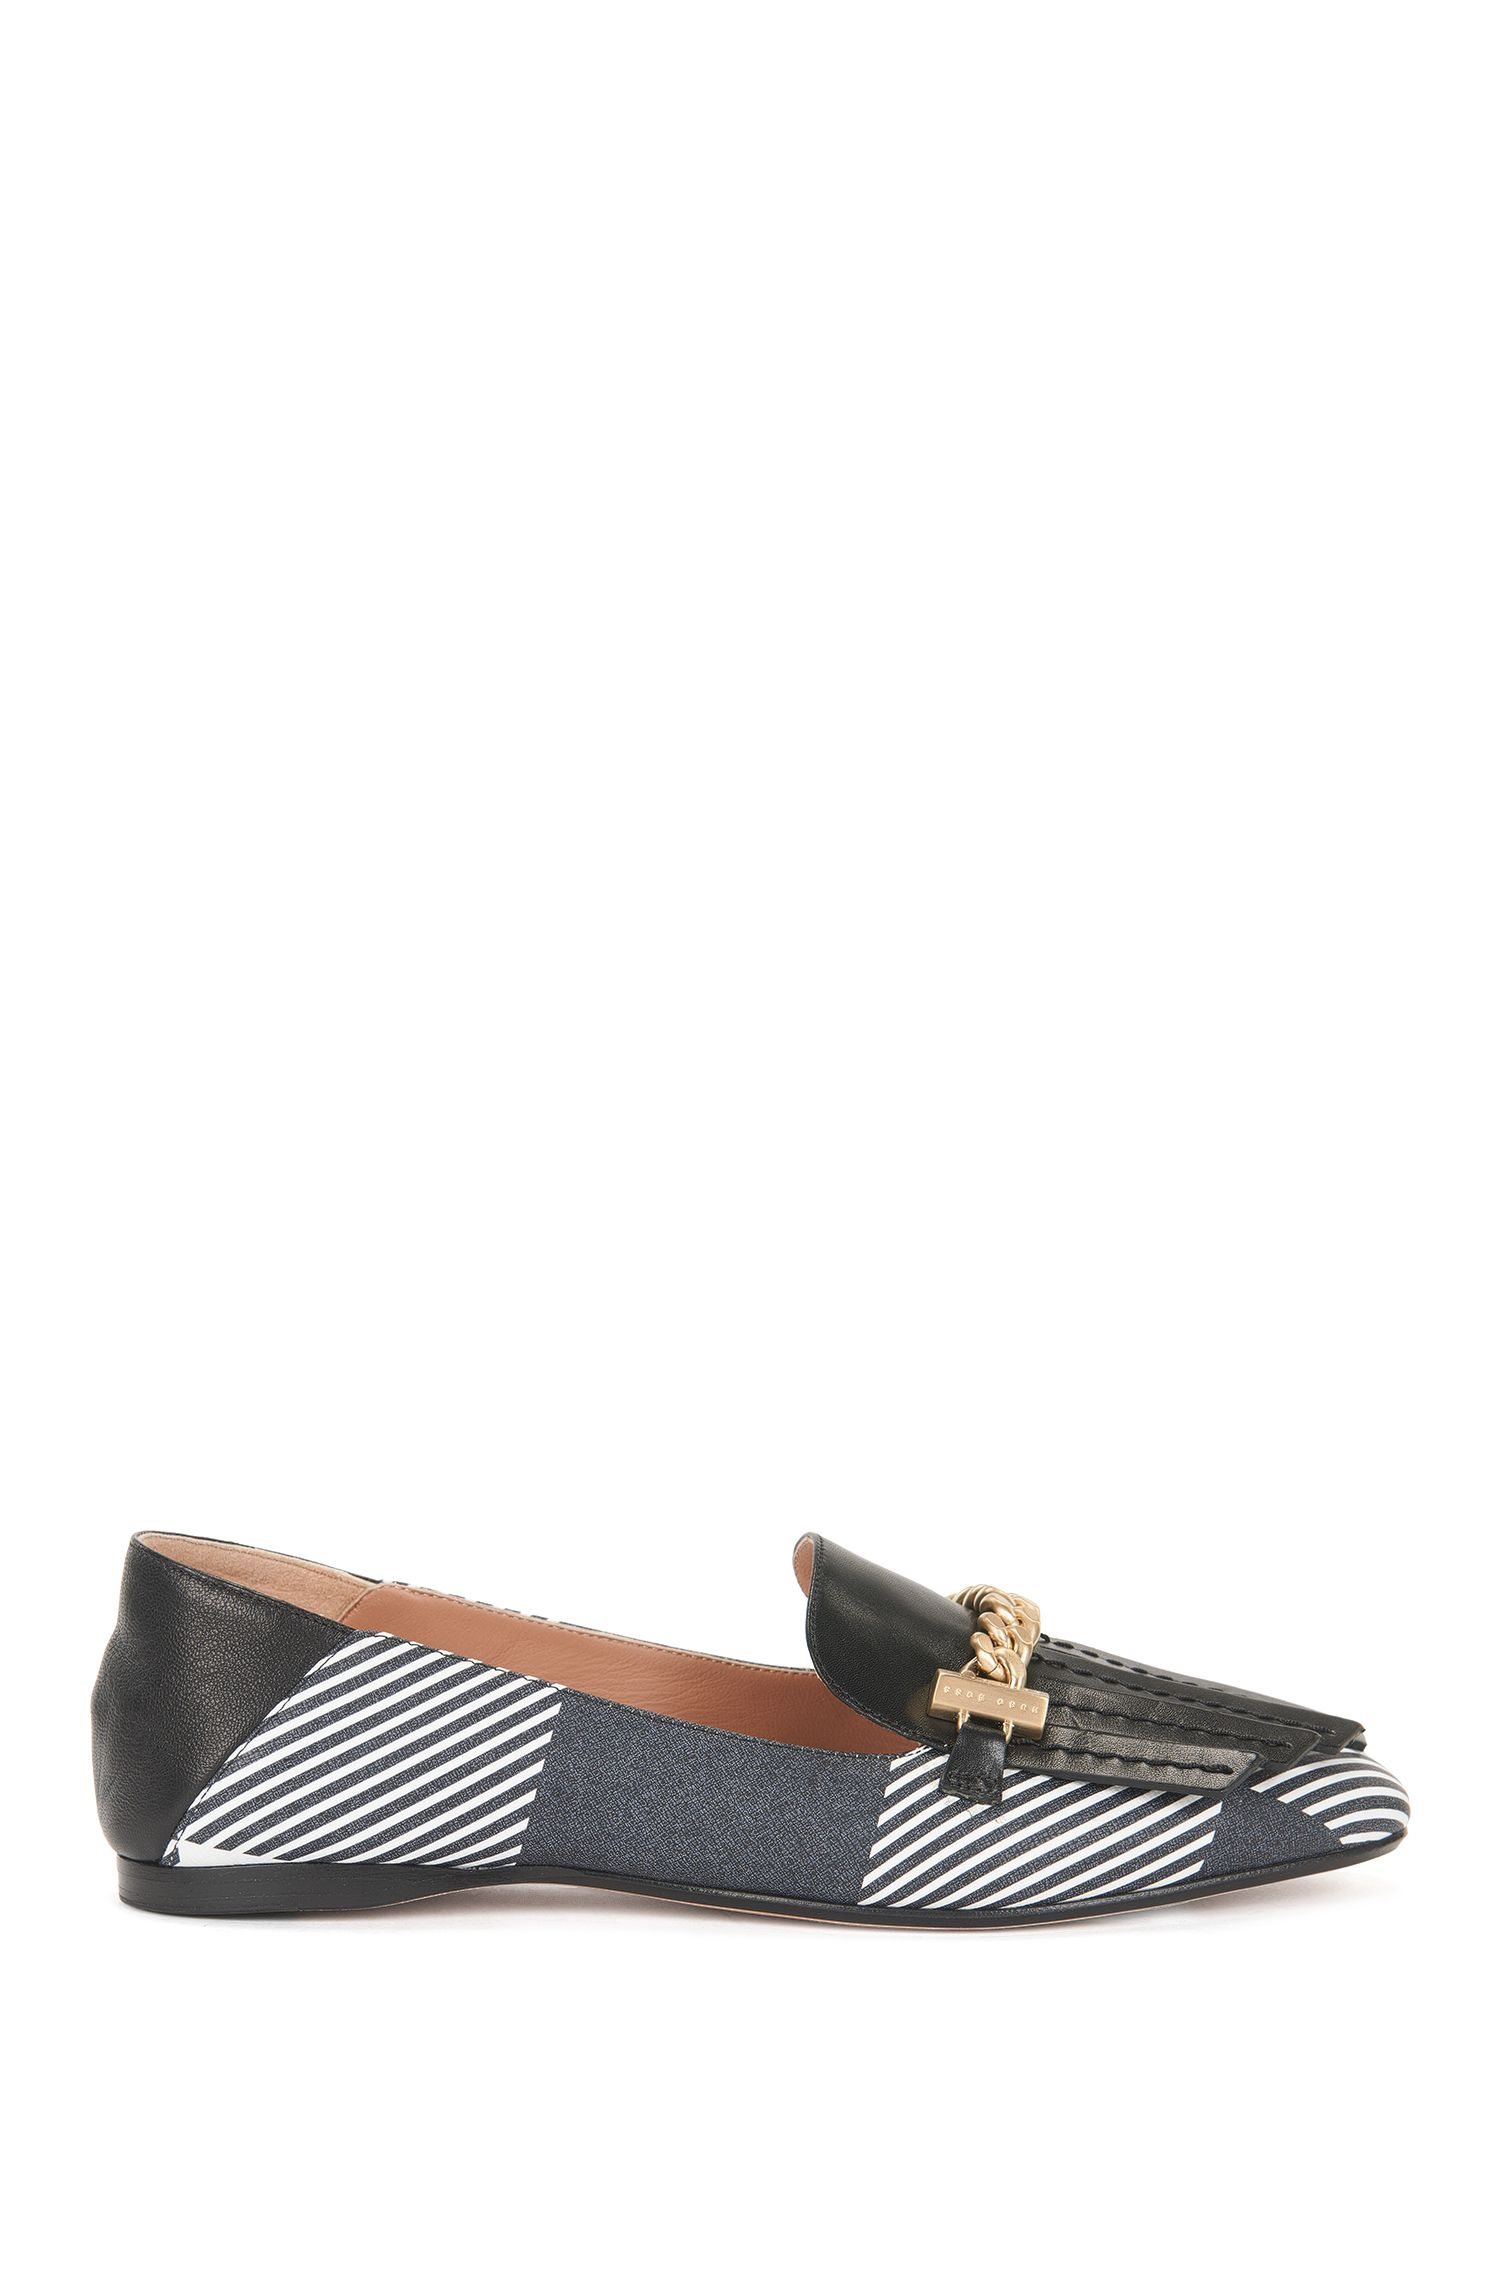 Leather loafers with chain trim